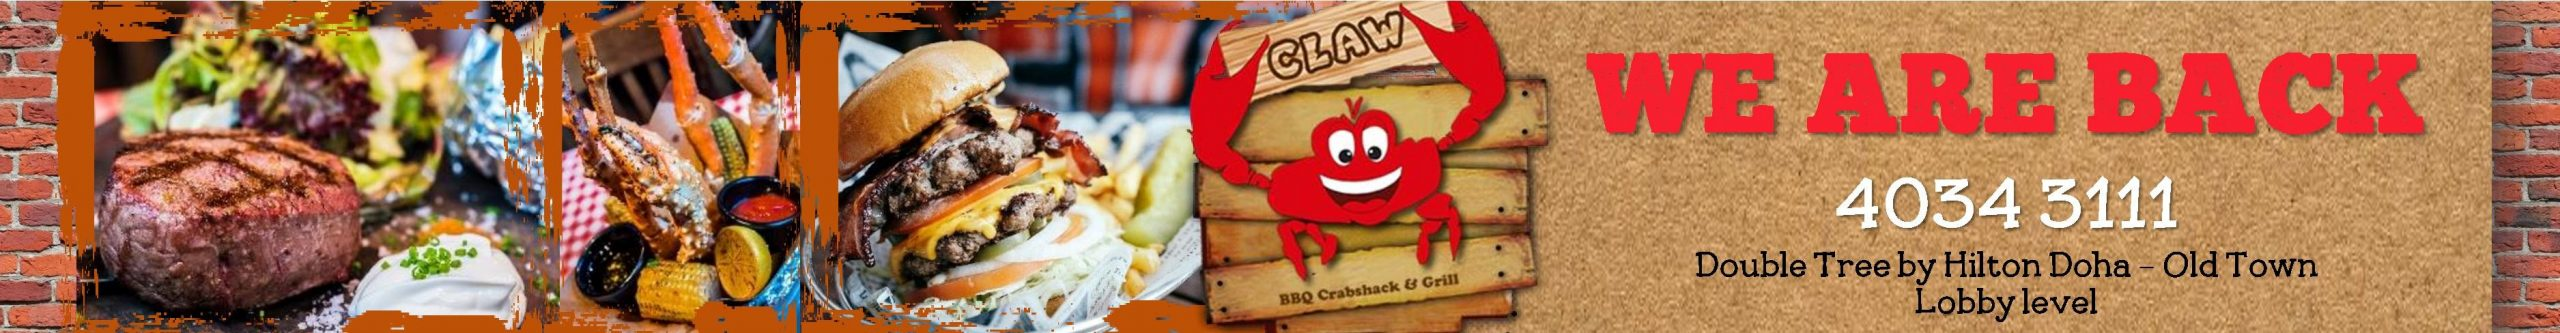 BBQ Crabshack & Grill – July